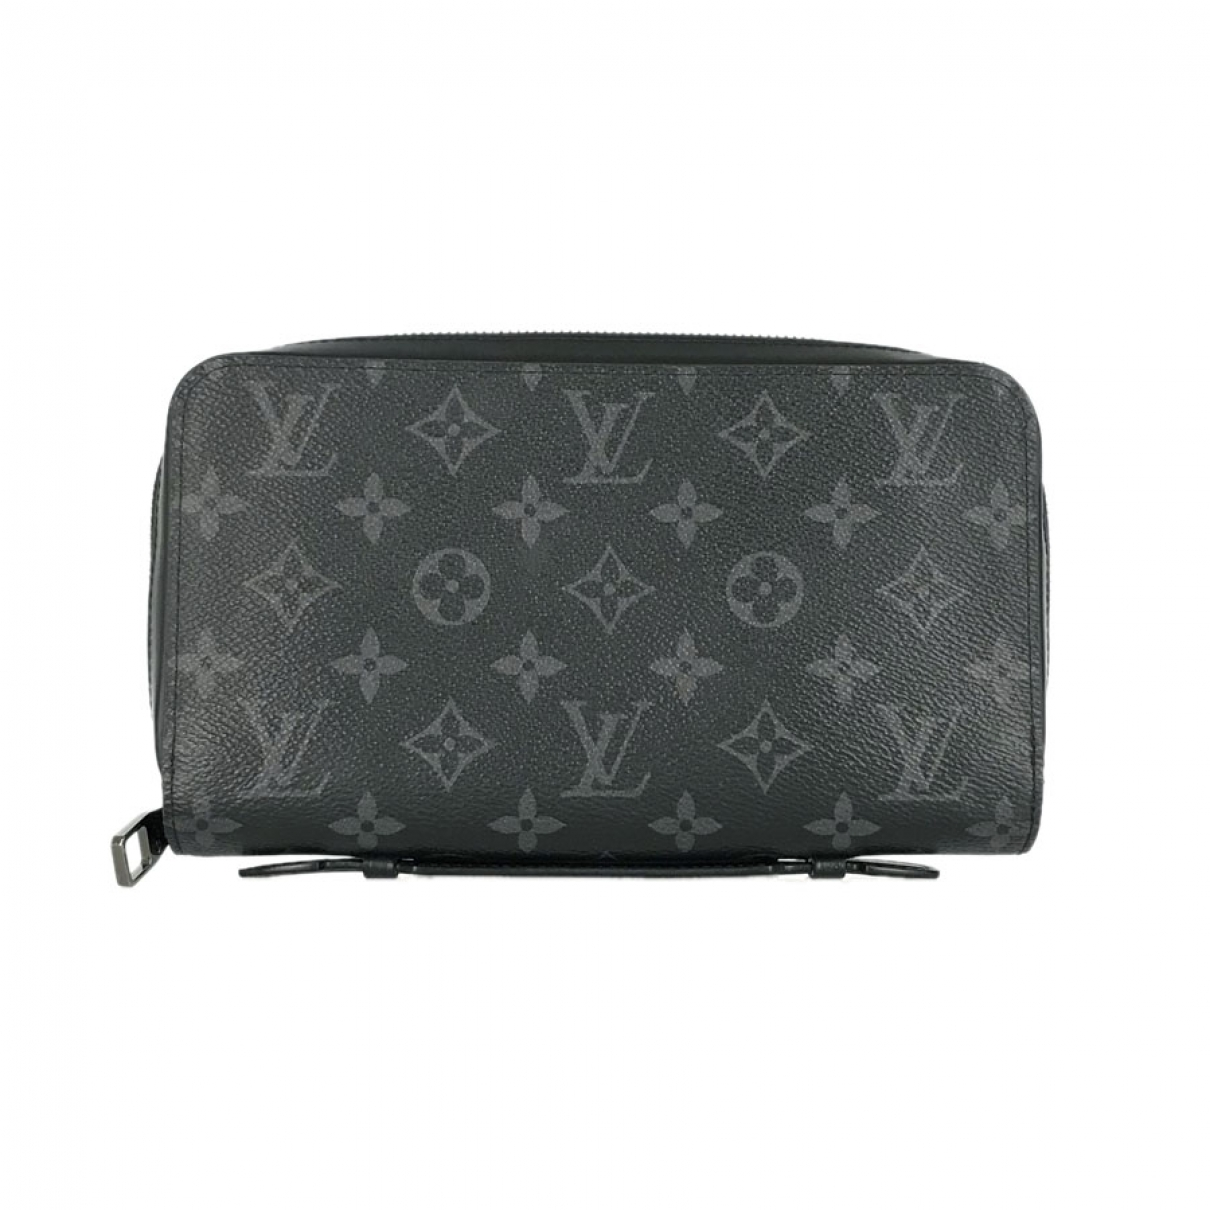 Louis Vuitton Zippy XL Kleinlederwaren in  Schwarz Leinen